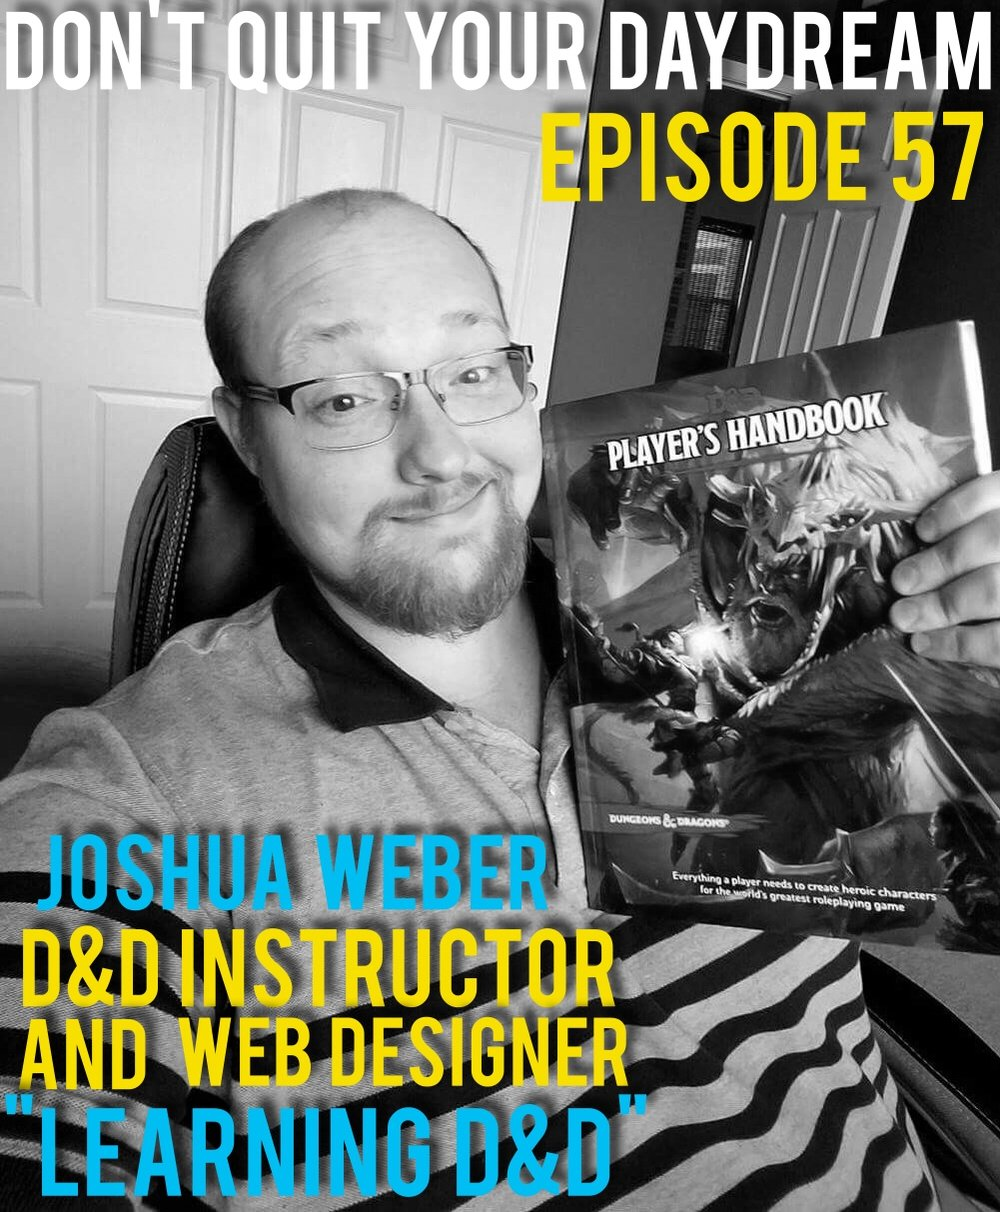 "Episode 57 of Don't Quit Your Daydream is with Dungeons and Dragons Instructor and Web Designer: Joshua Weber! Ever feel the itch to try D&D but have no clue how to even start? Josh has designed a website called ""Learning D&D"" to help even the most experienced player improve their experience. We discuss how letting your nerd flag isn't a bad thing, best practices for launching a website and a whole lot more!  https://www.facebook.com/learningdnd/    www.learningdnd.com"